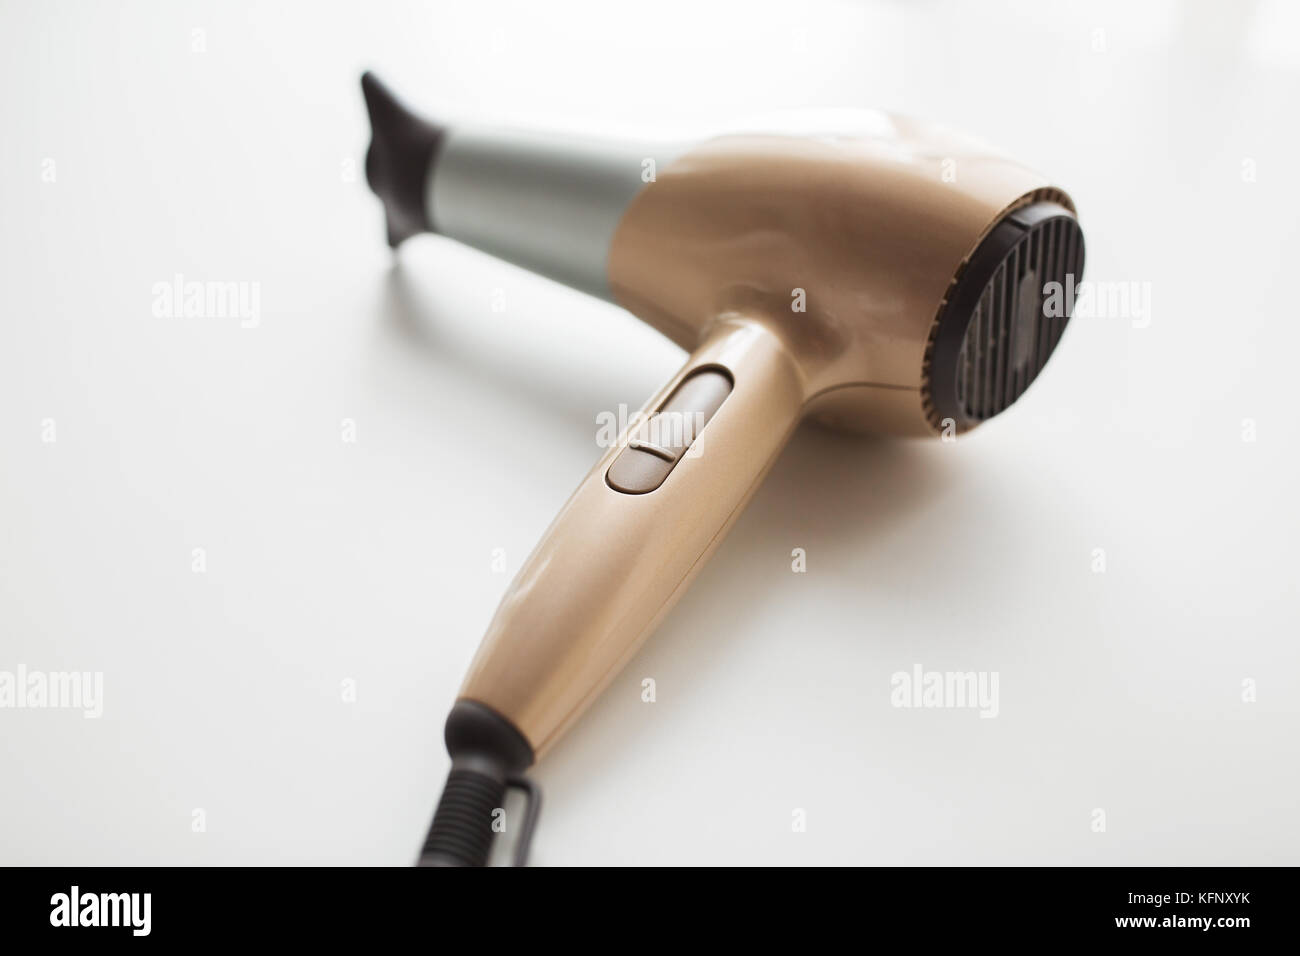 hairdryer on white background - Stock Image